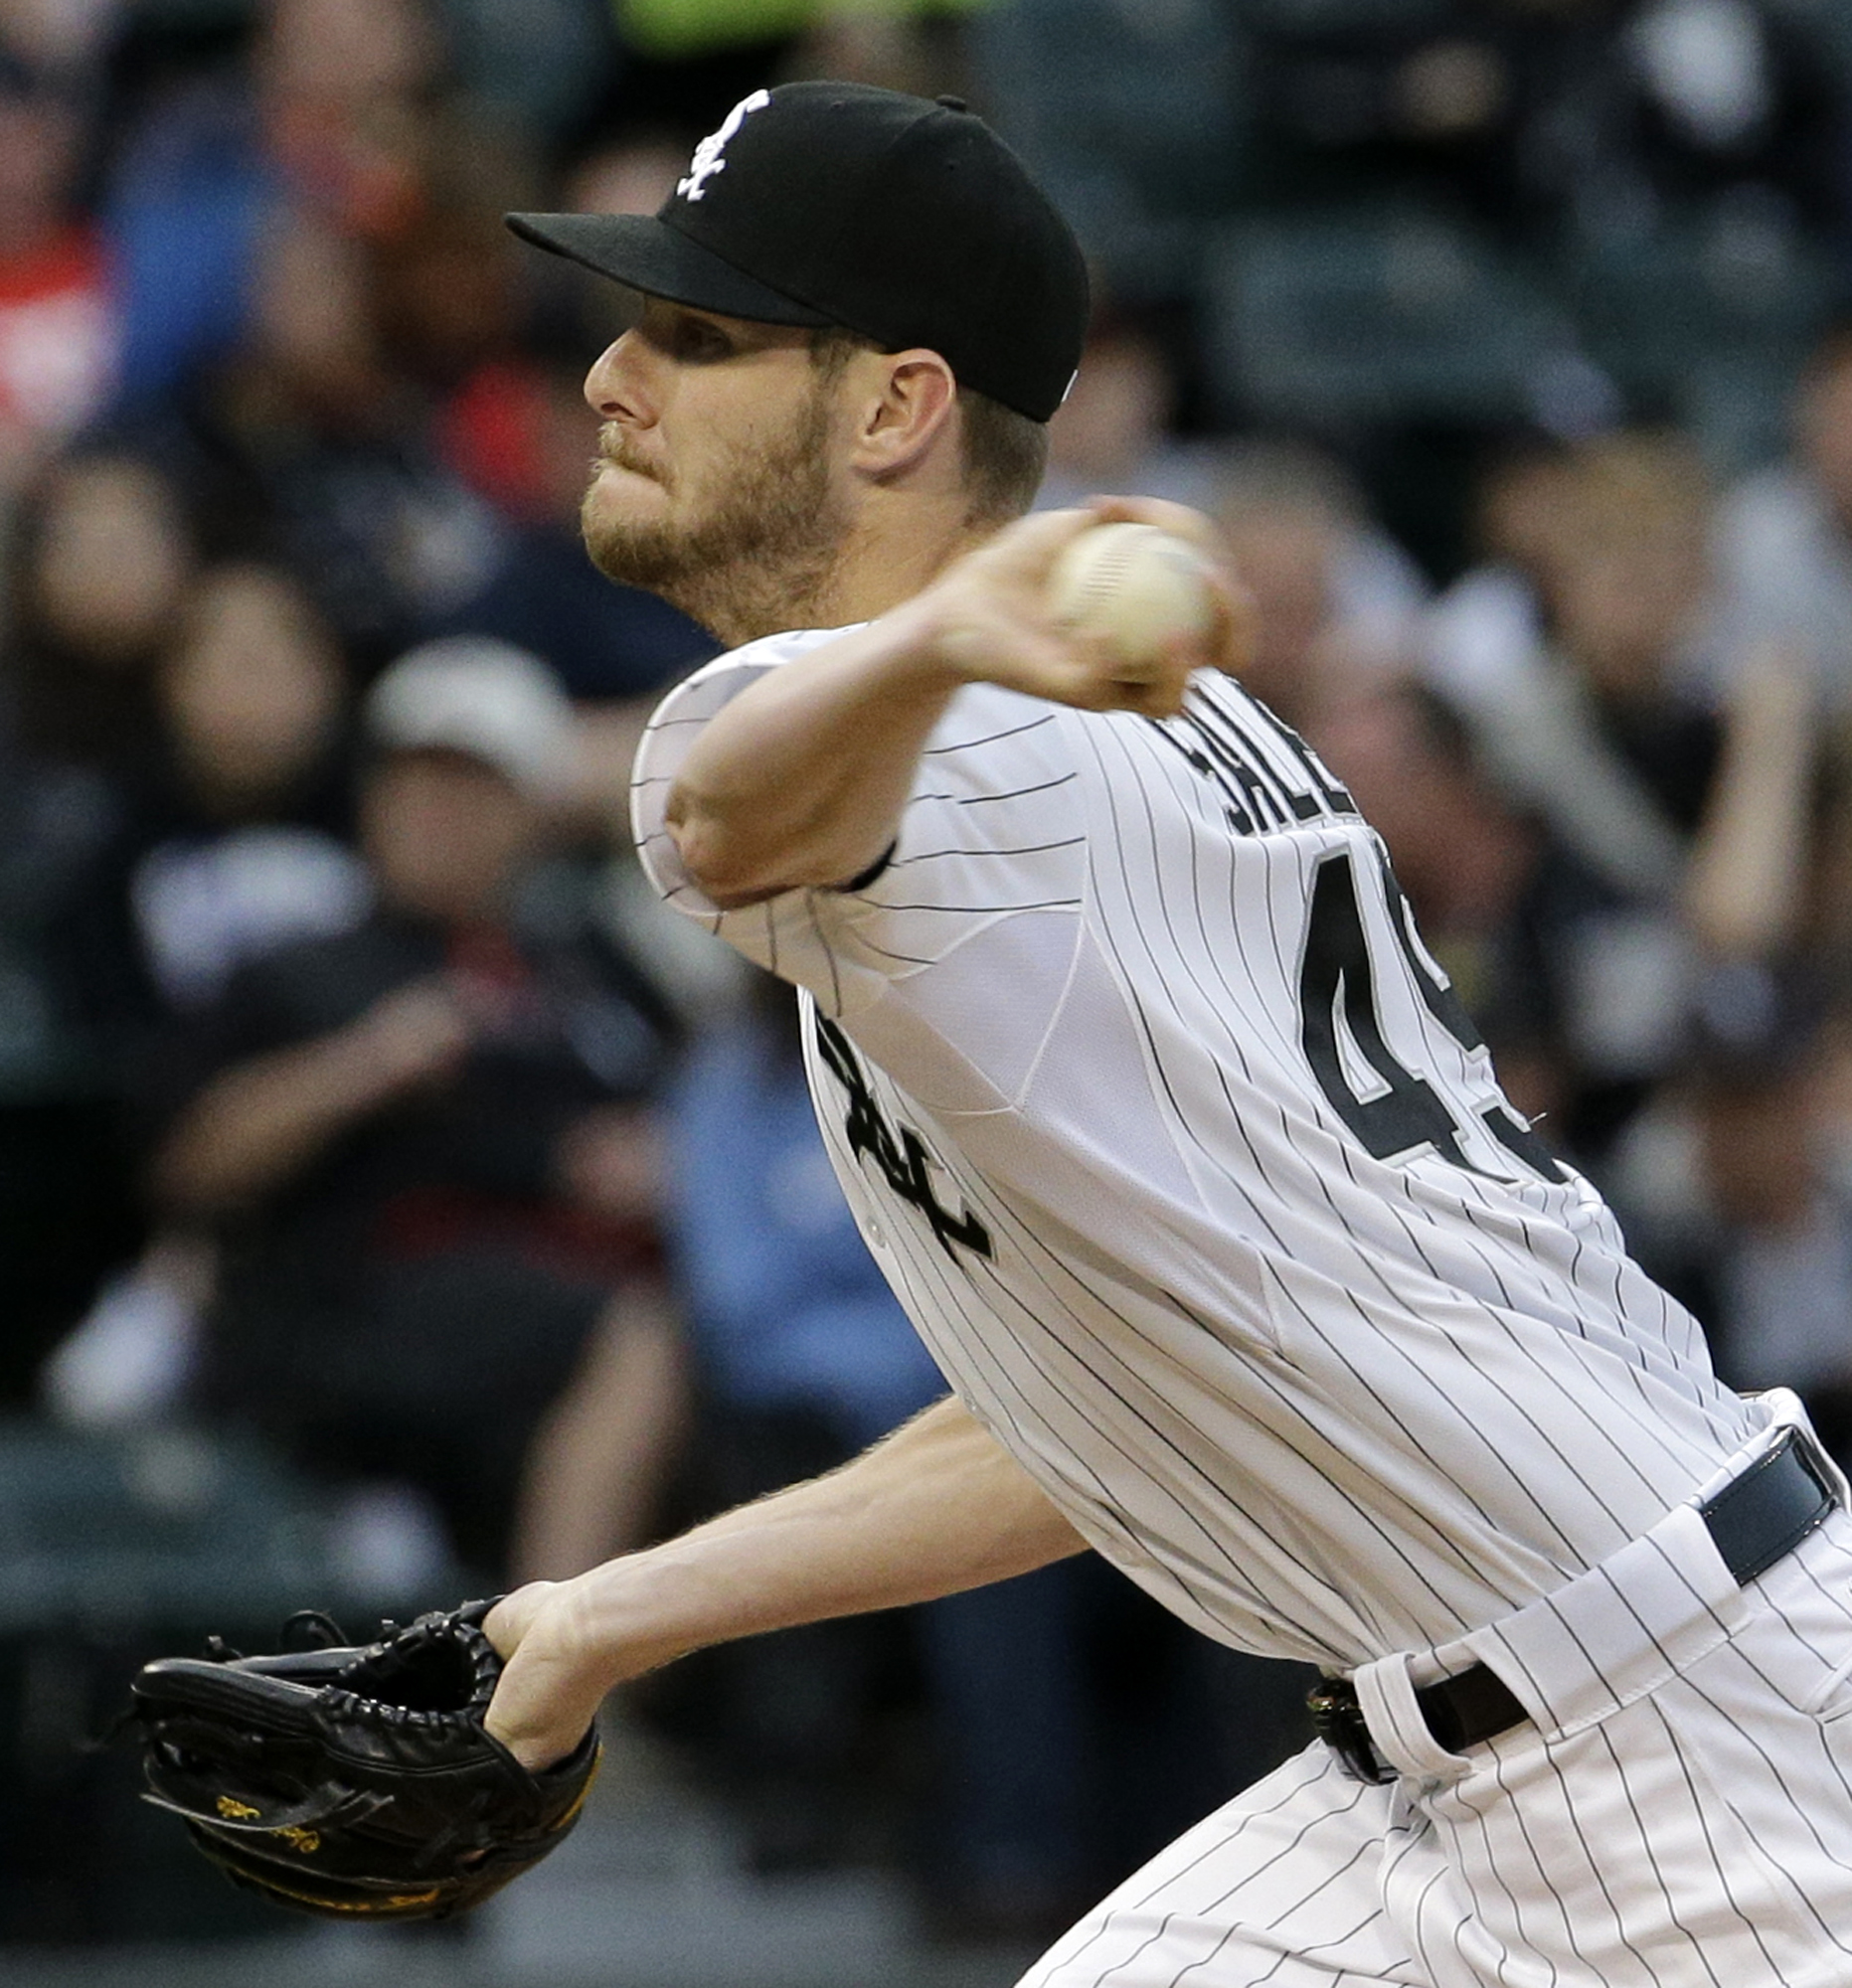 Chicago White Sox starter Chris Sale throws against the Texas Rangers during the third inning of a baseball game on Friday, June 19, 2015,  in Chicago. (AP Photo/Nam Y. Huh)